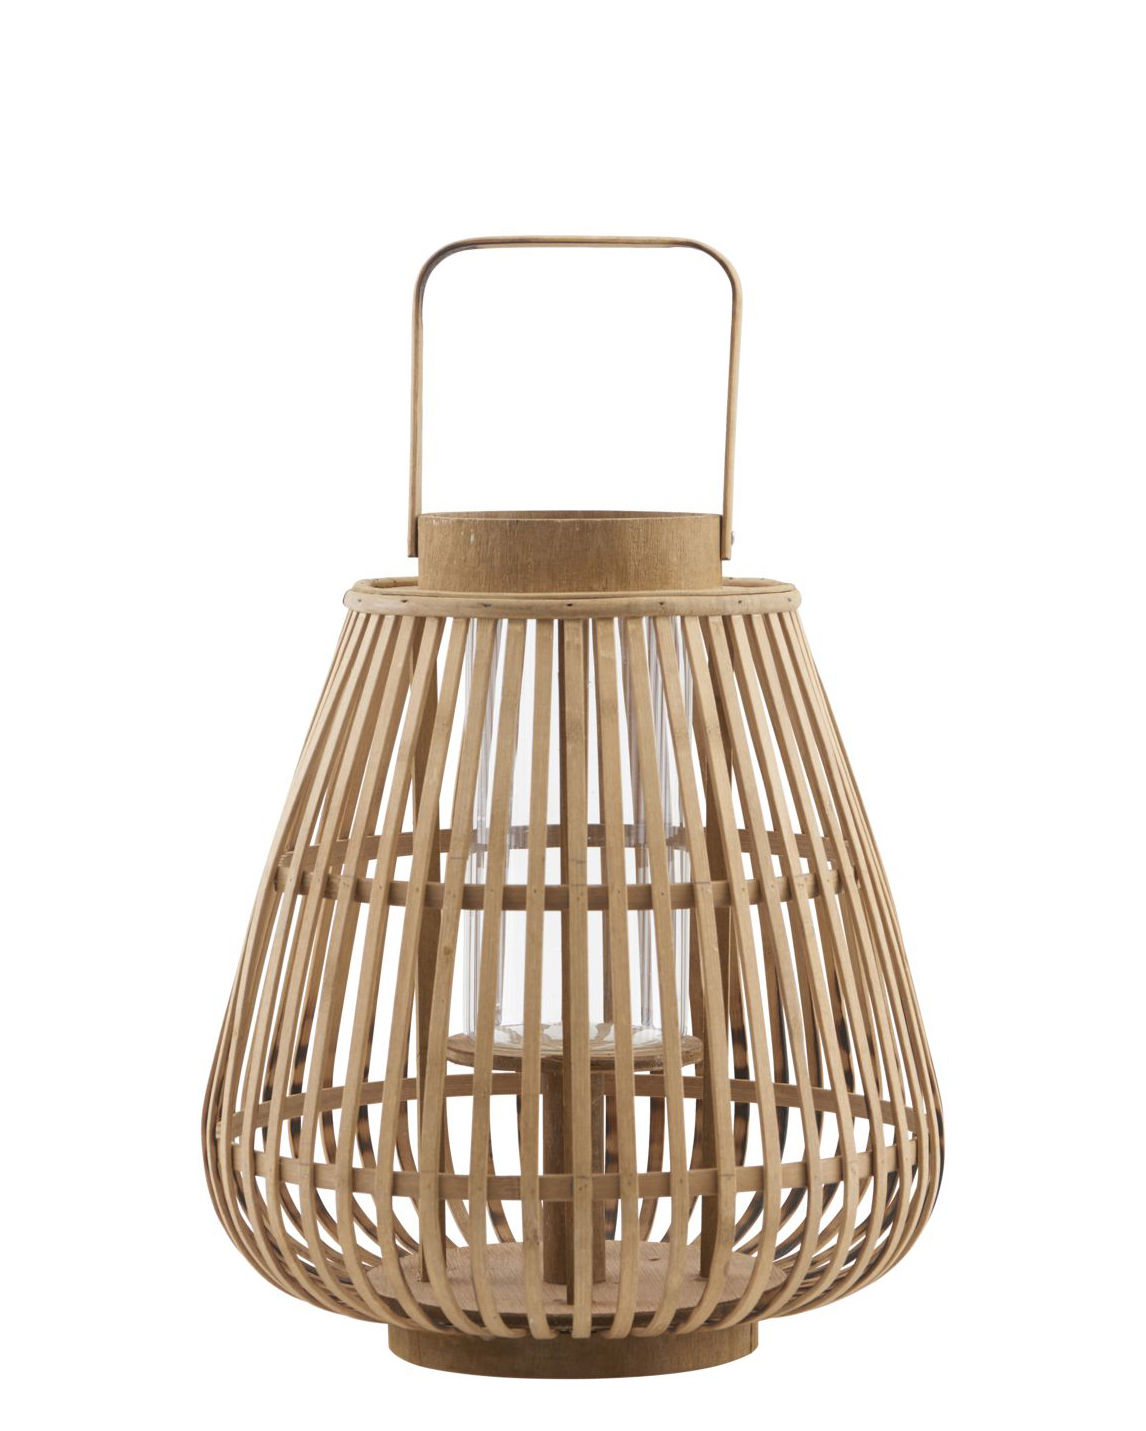 Outdoor - Ornaments & Accessories - Valu Lantern - / Bamboo - H 33 cm by House Doctor - Valu / Bamboo - Bamboo, Glass